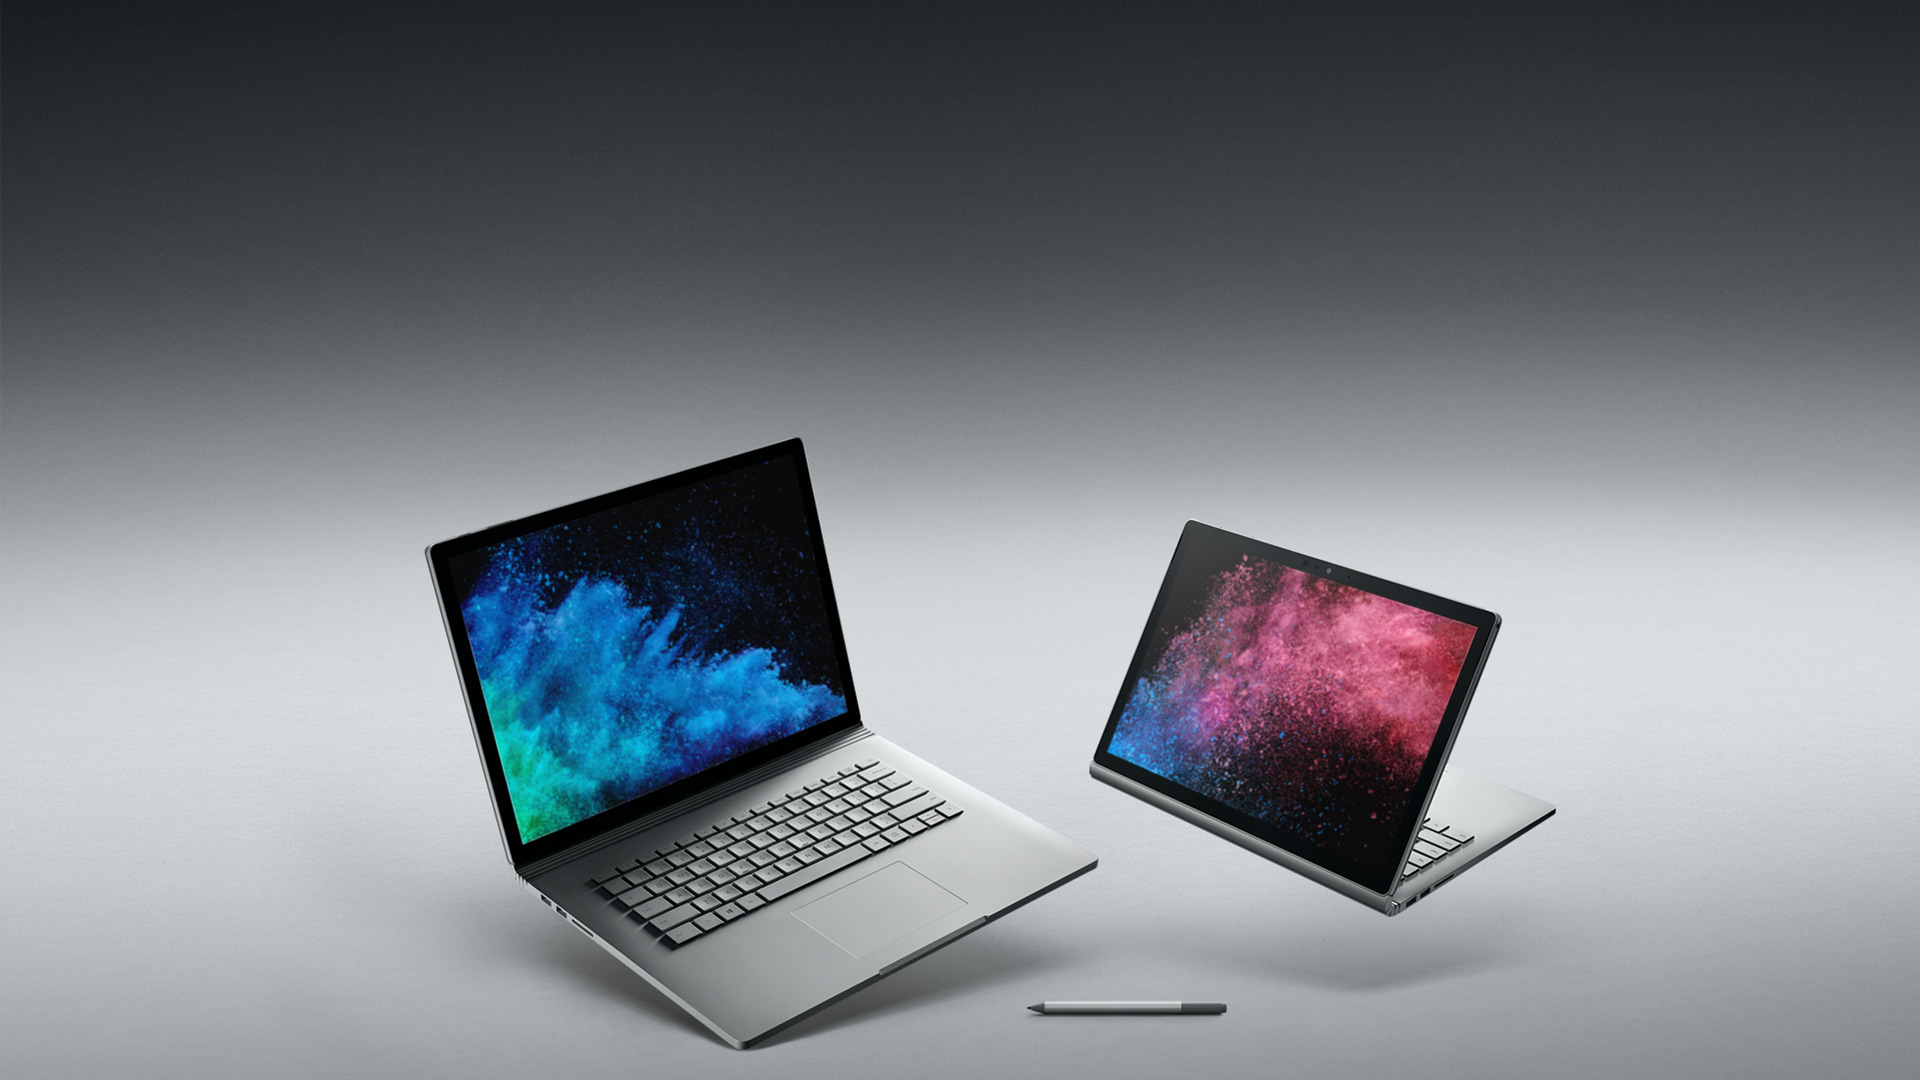 Surface Book 2 15 pulgadas y Surface Book 2 13,5 pulgadas